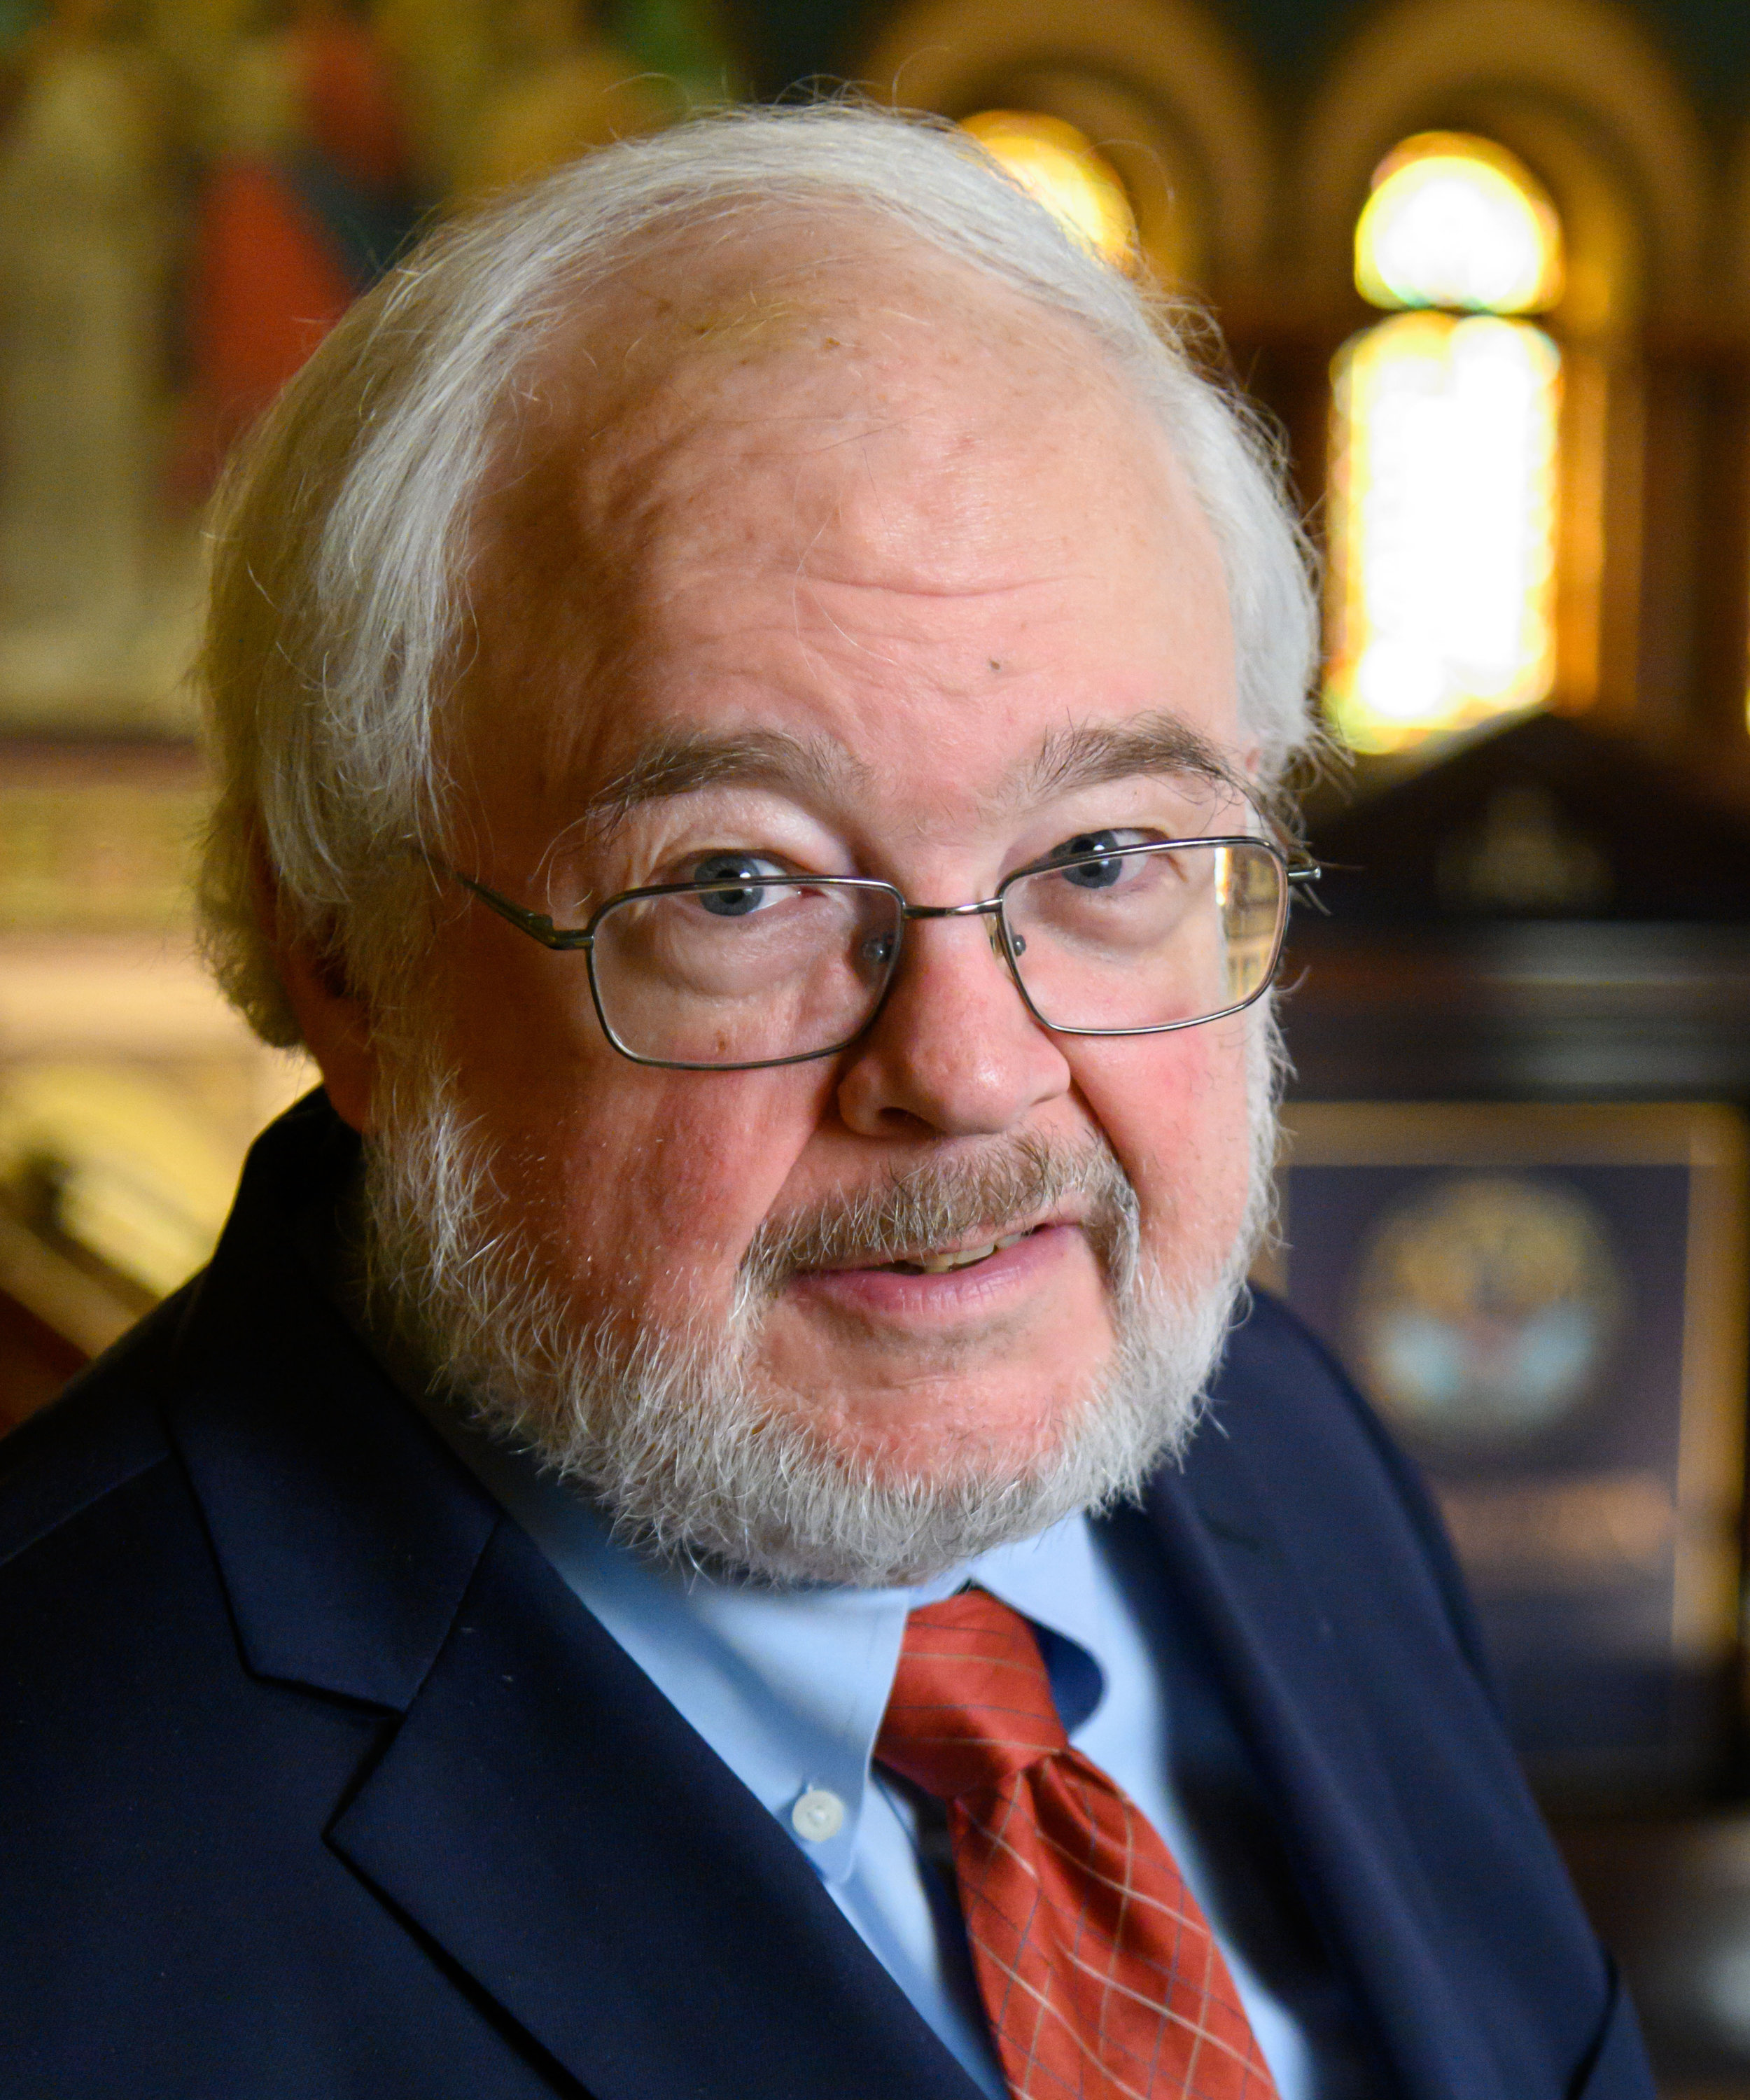 John Carr, Founder and Director, Initiative on Catholic Social Thought and Public Life, Georgetown University    More about John Carr    — A brief biography